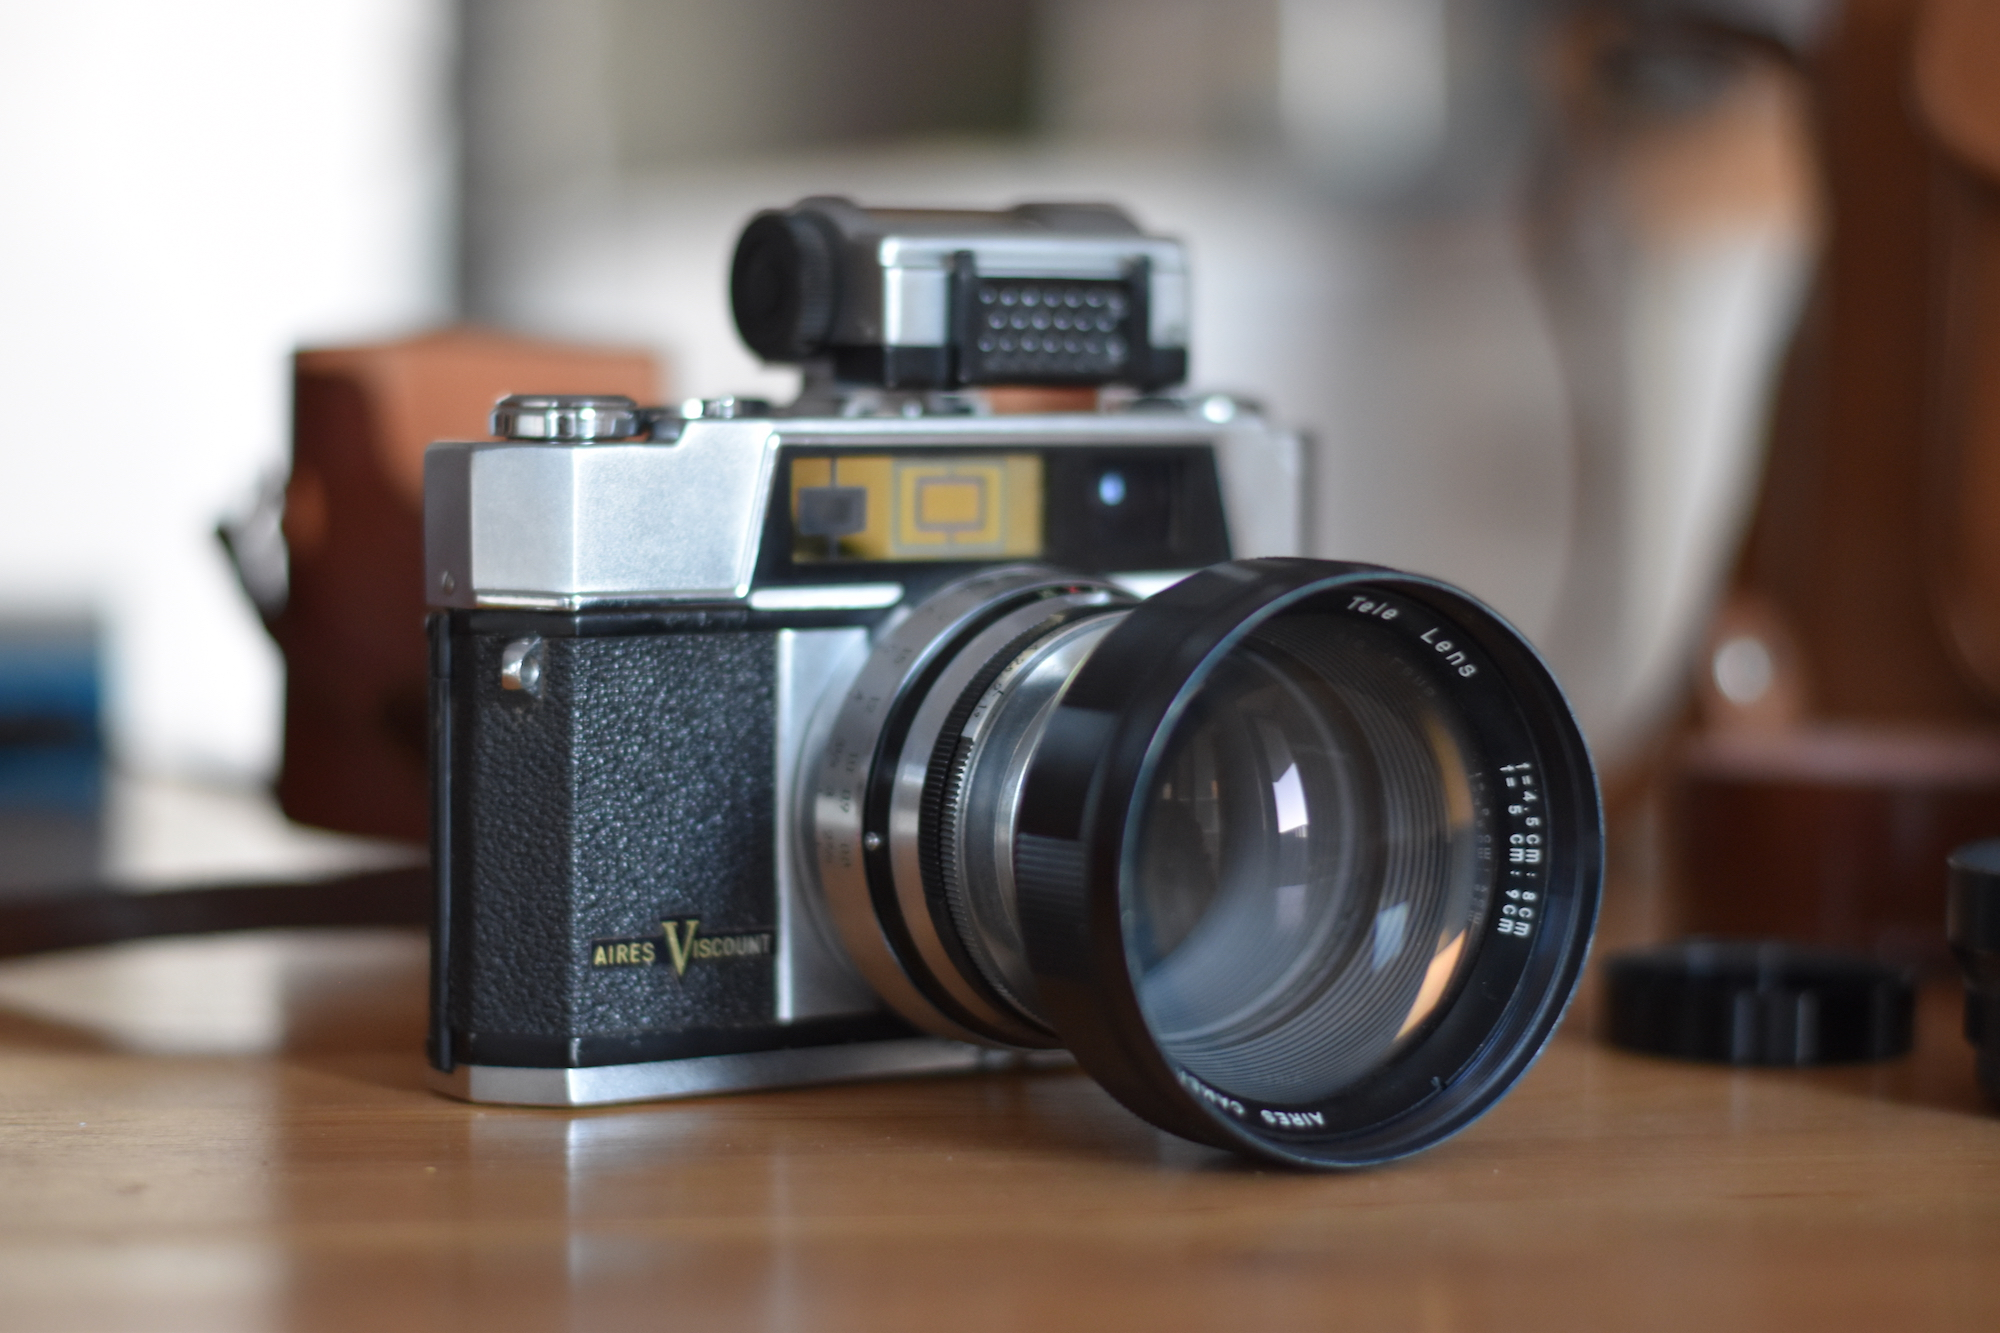 Viscount camera with selenium light meter and telephoto lens attachements.